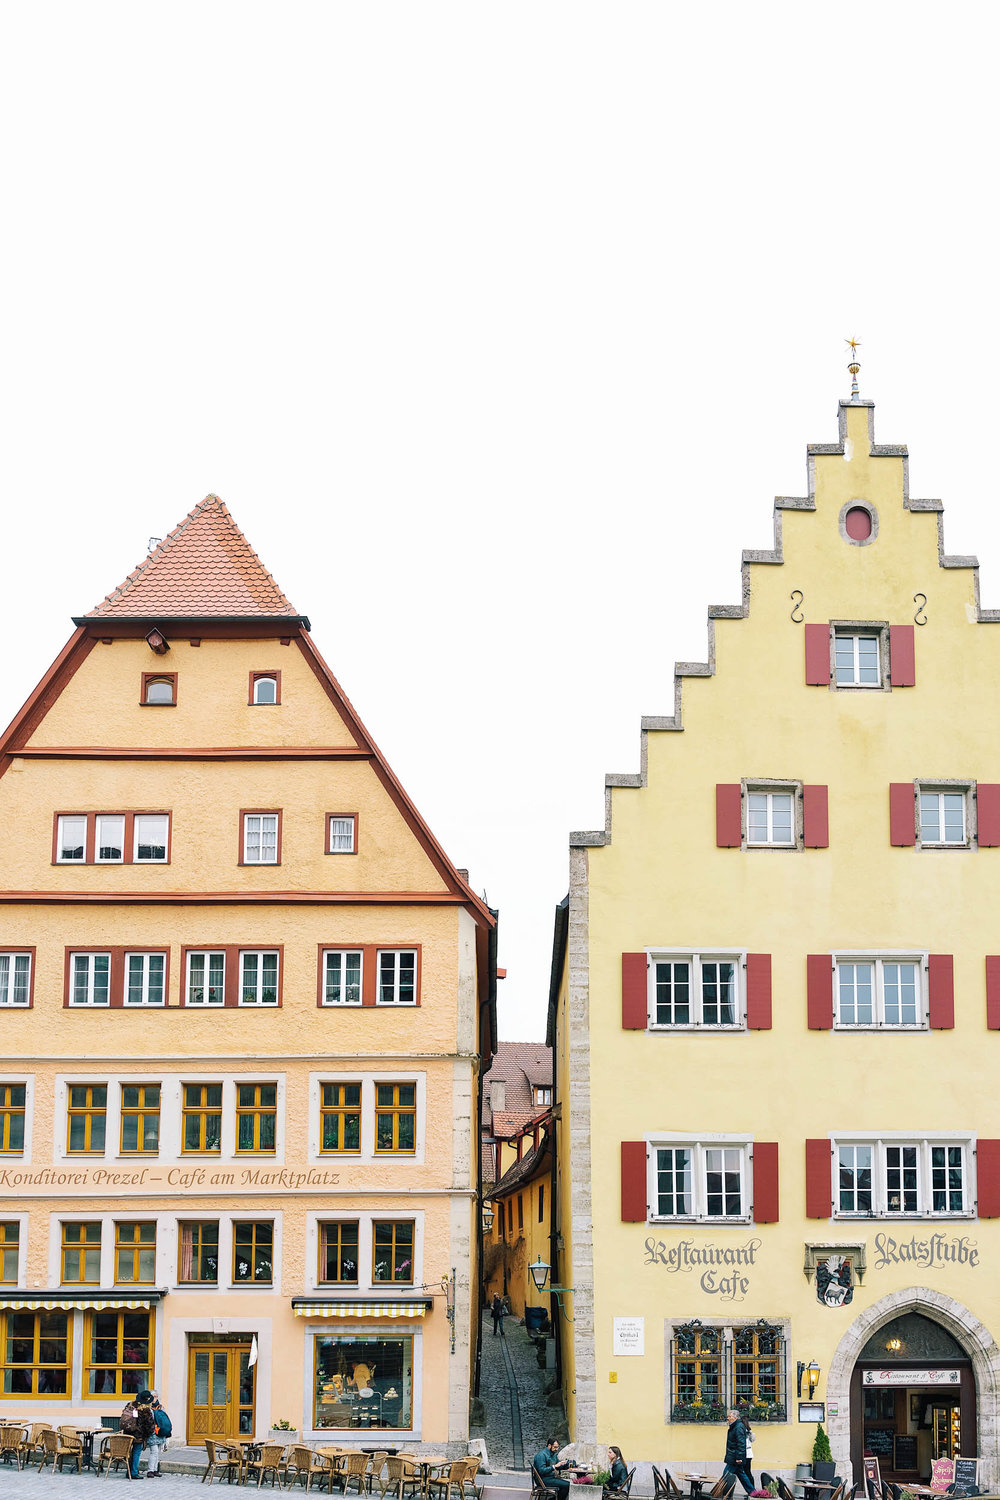 How to get to Rothenburg, Germany